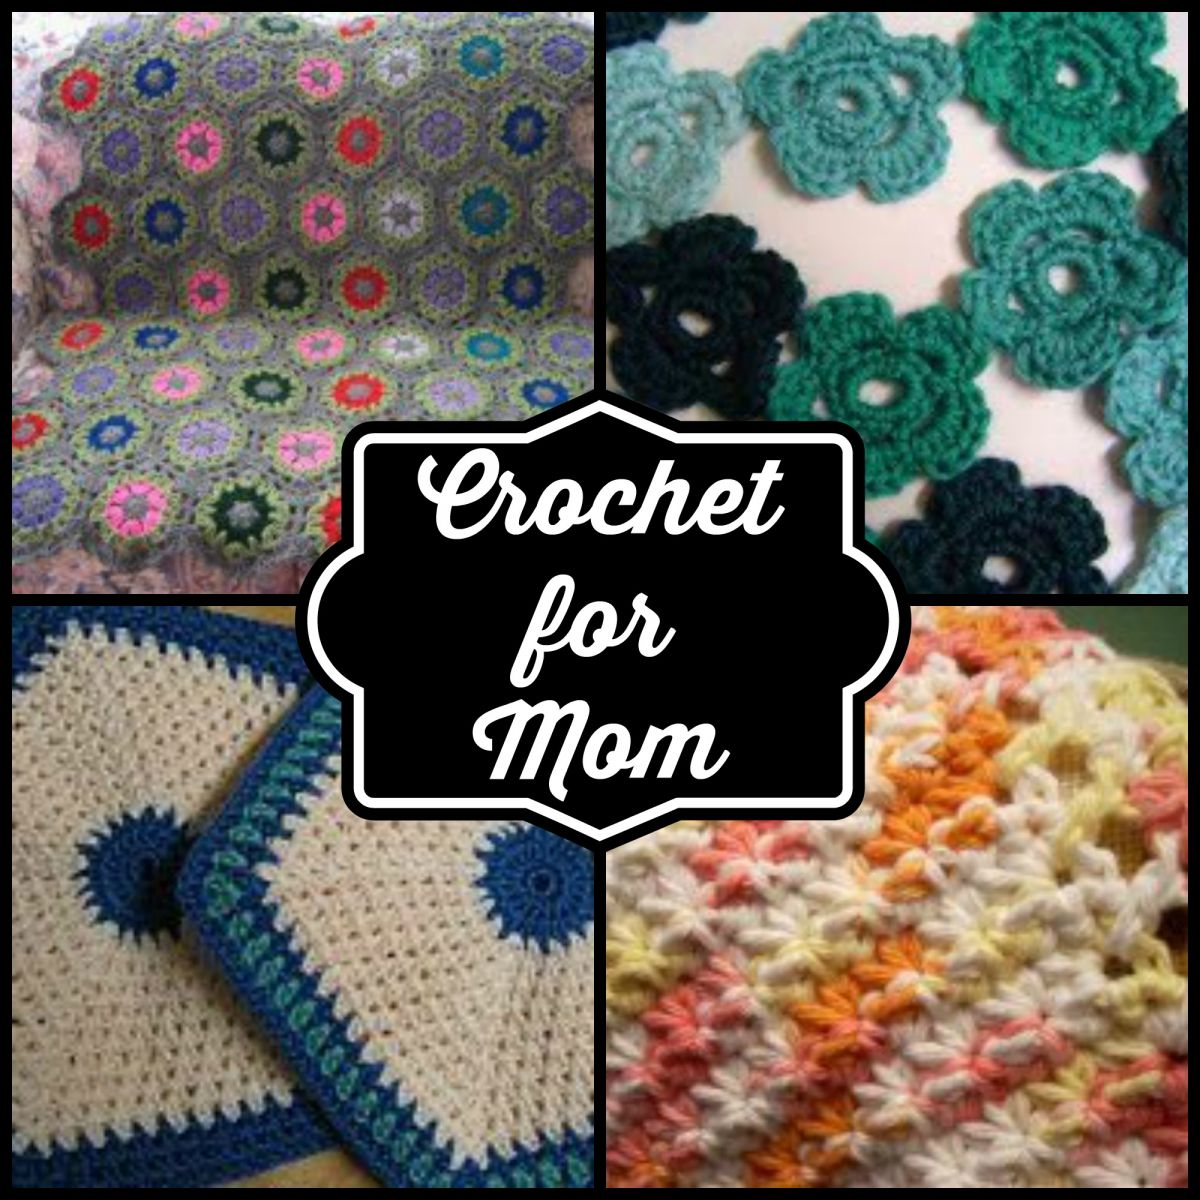 Crochet for Mom: 20+ Patterns to Make Her Feel Like a Queen Bee